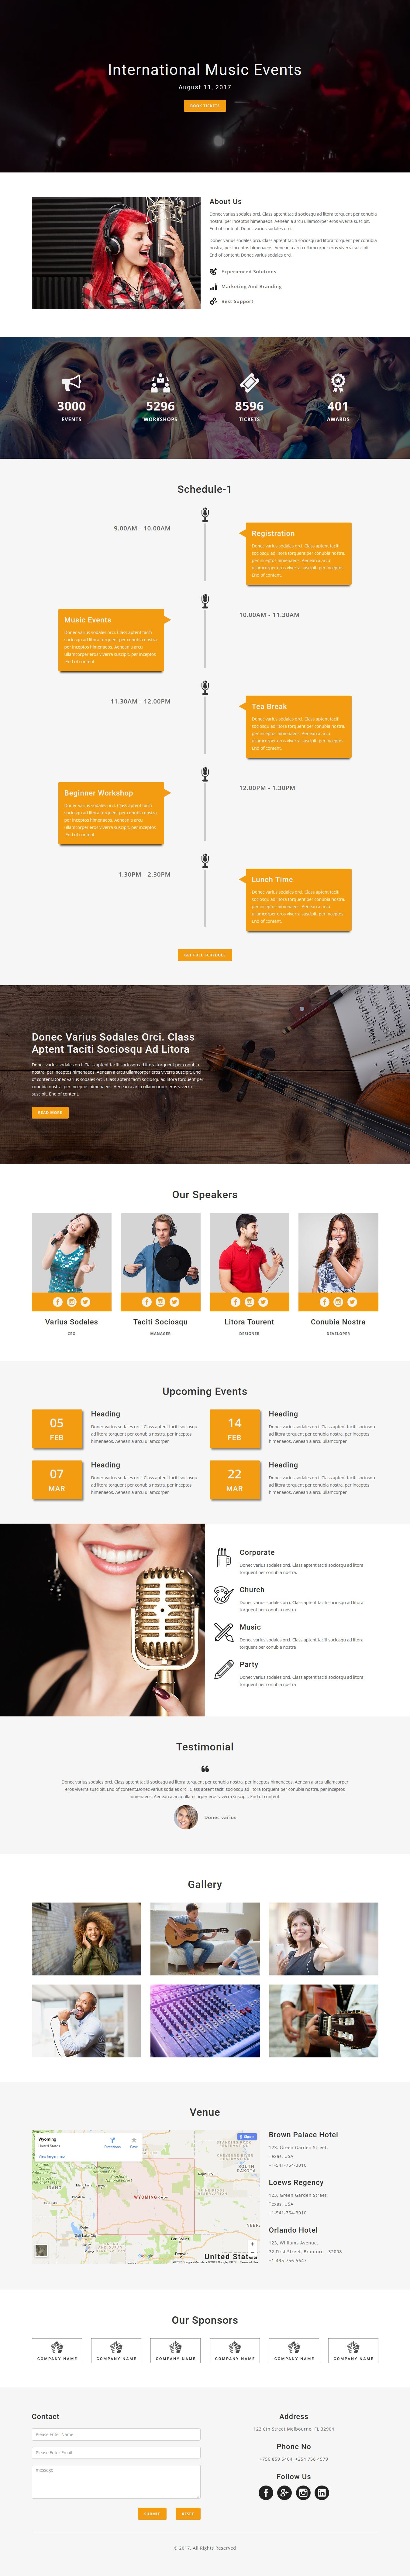 Event multipurpose responsive html landing page